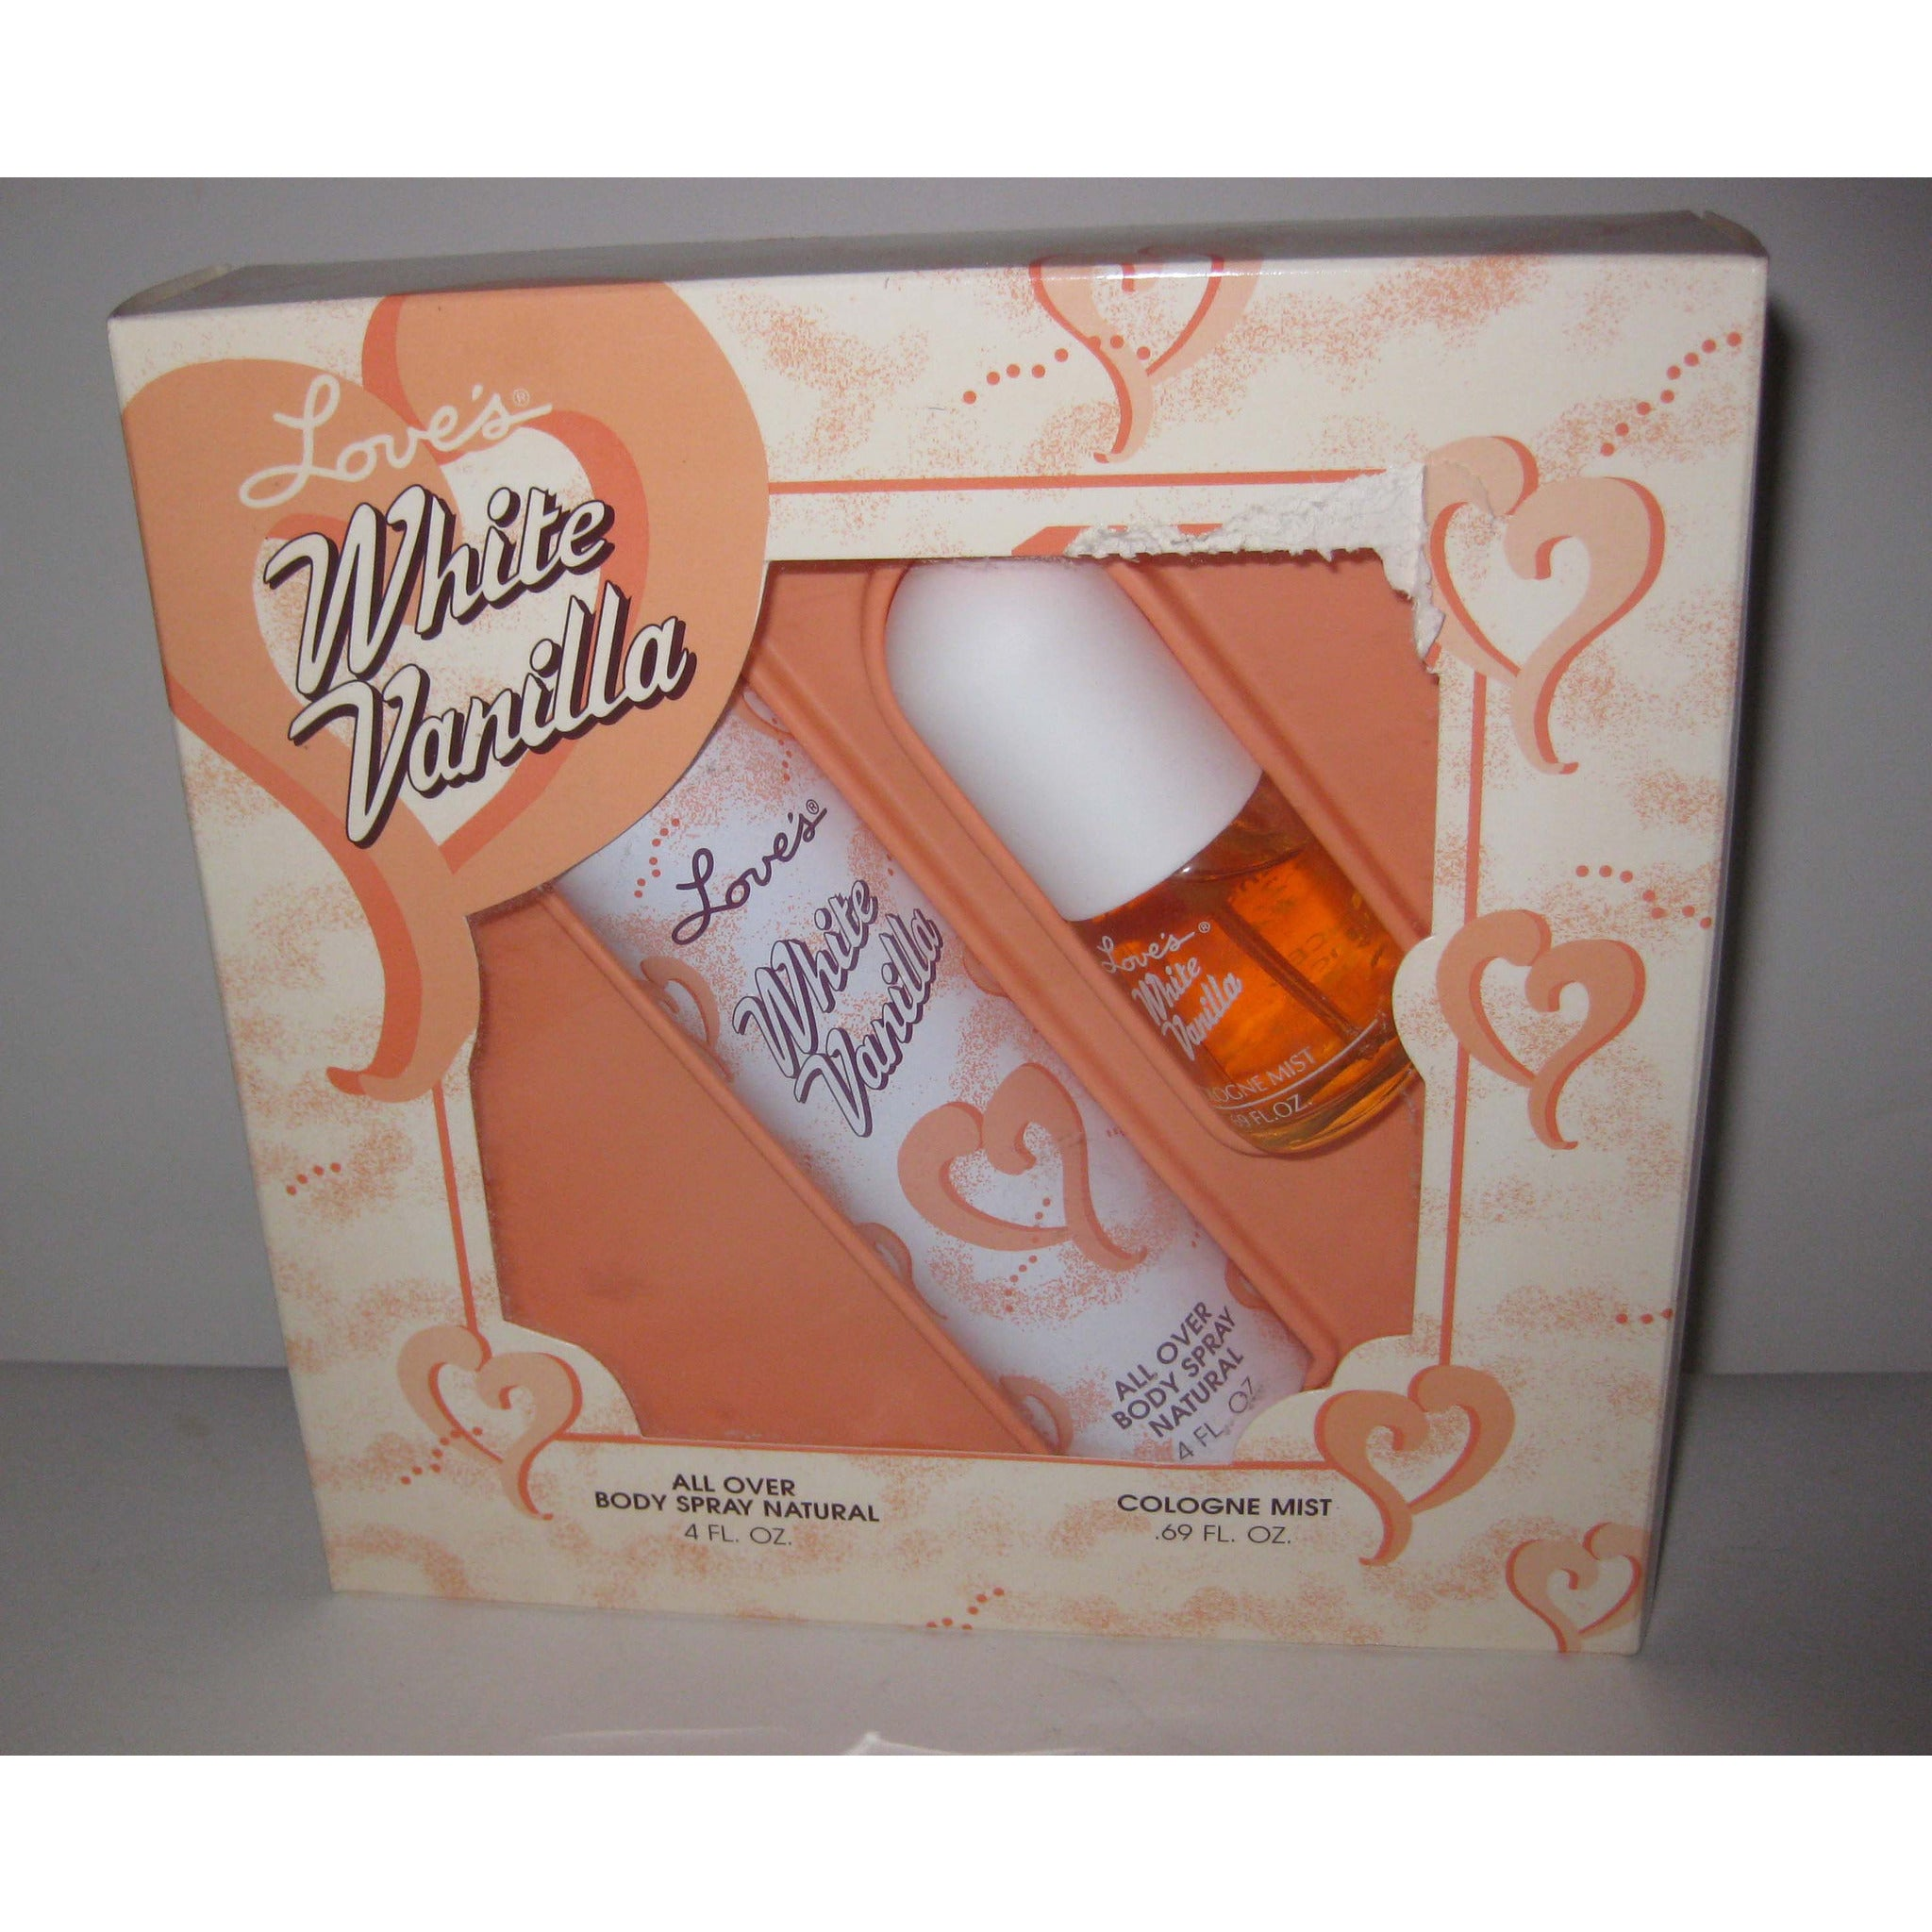 Vintage Love's White Vanilla Fragrance Set By MEM